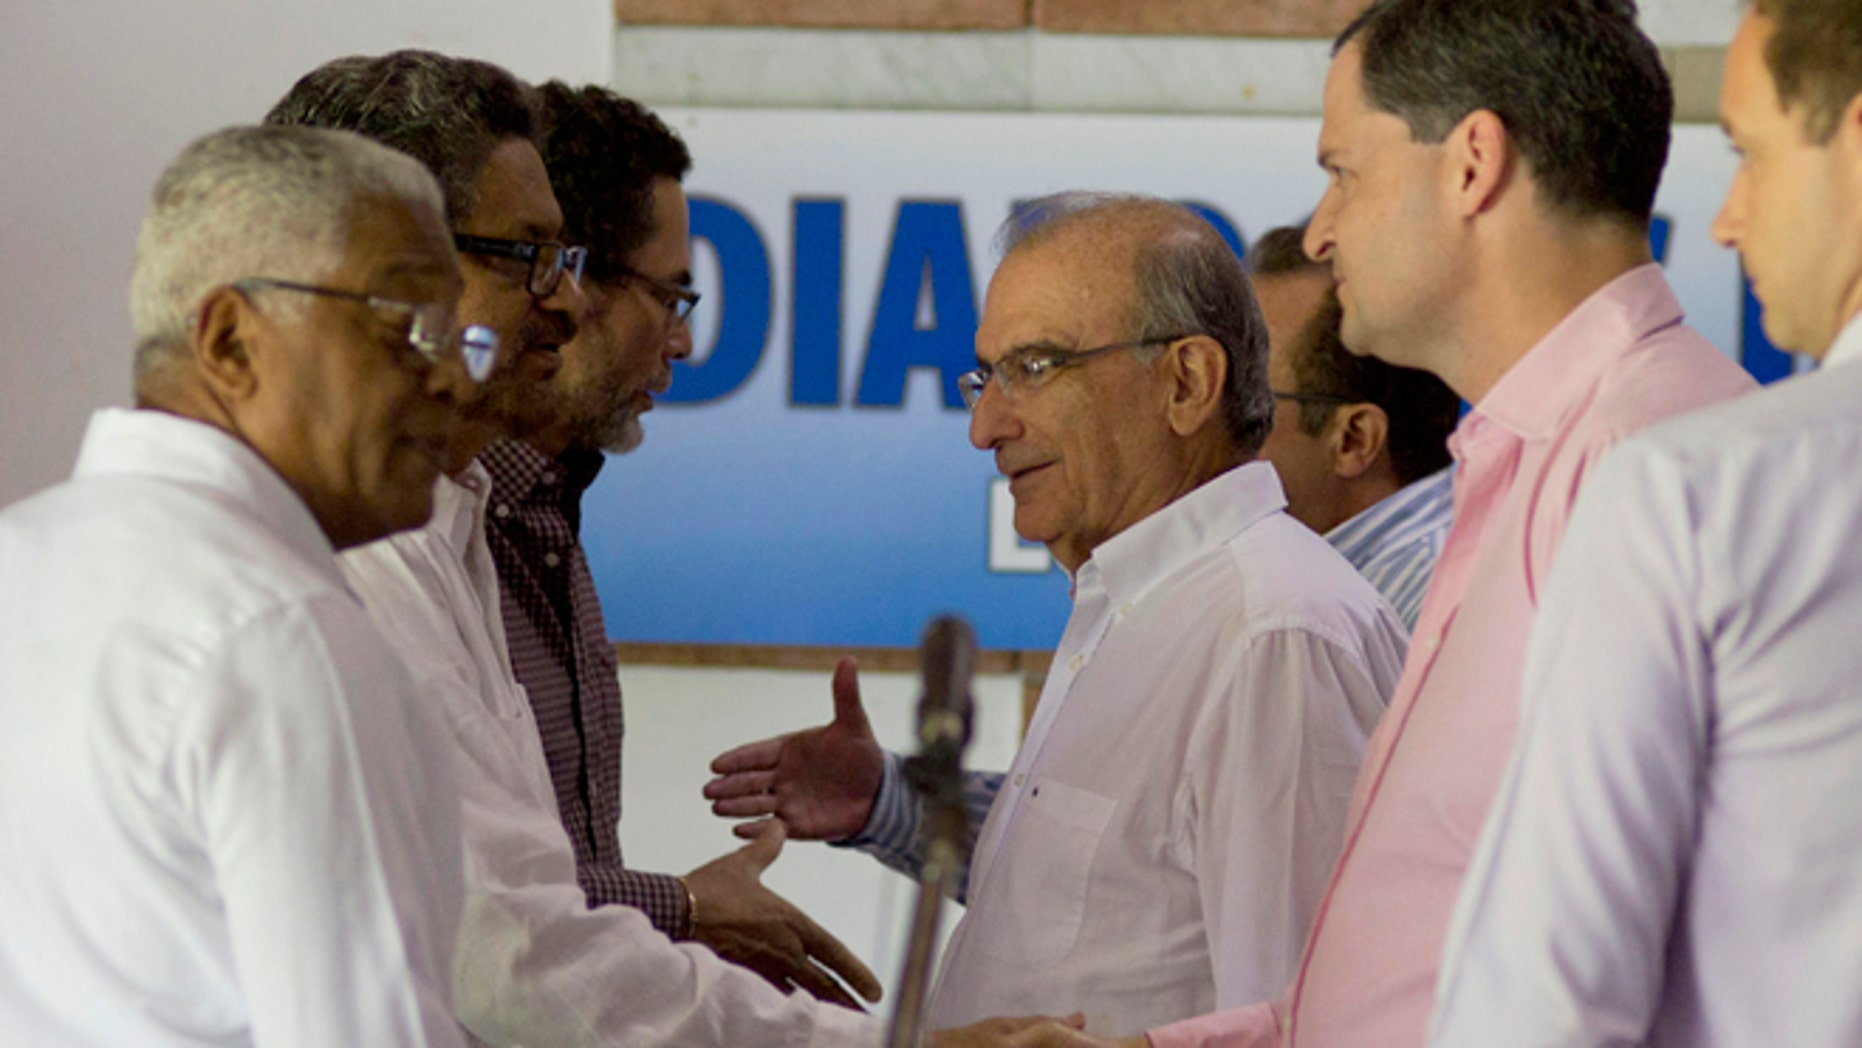 Dec. 3, 2014: Humberto de la Calle, head of Colombia's government peace negotiation team, center, talks with Ivan Marquez, chief negotiator for the Revolutionary Armed Forces of Colombia (FARC), after a joint statement in Havana, Cuba.